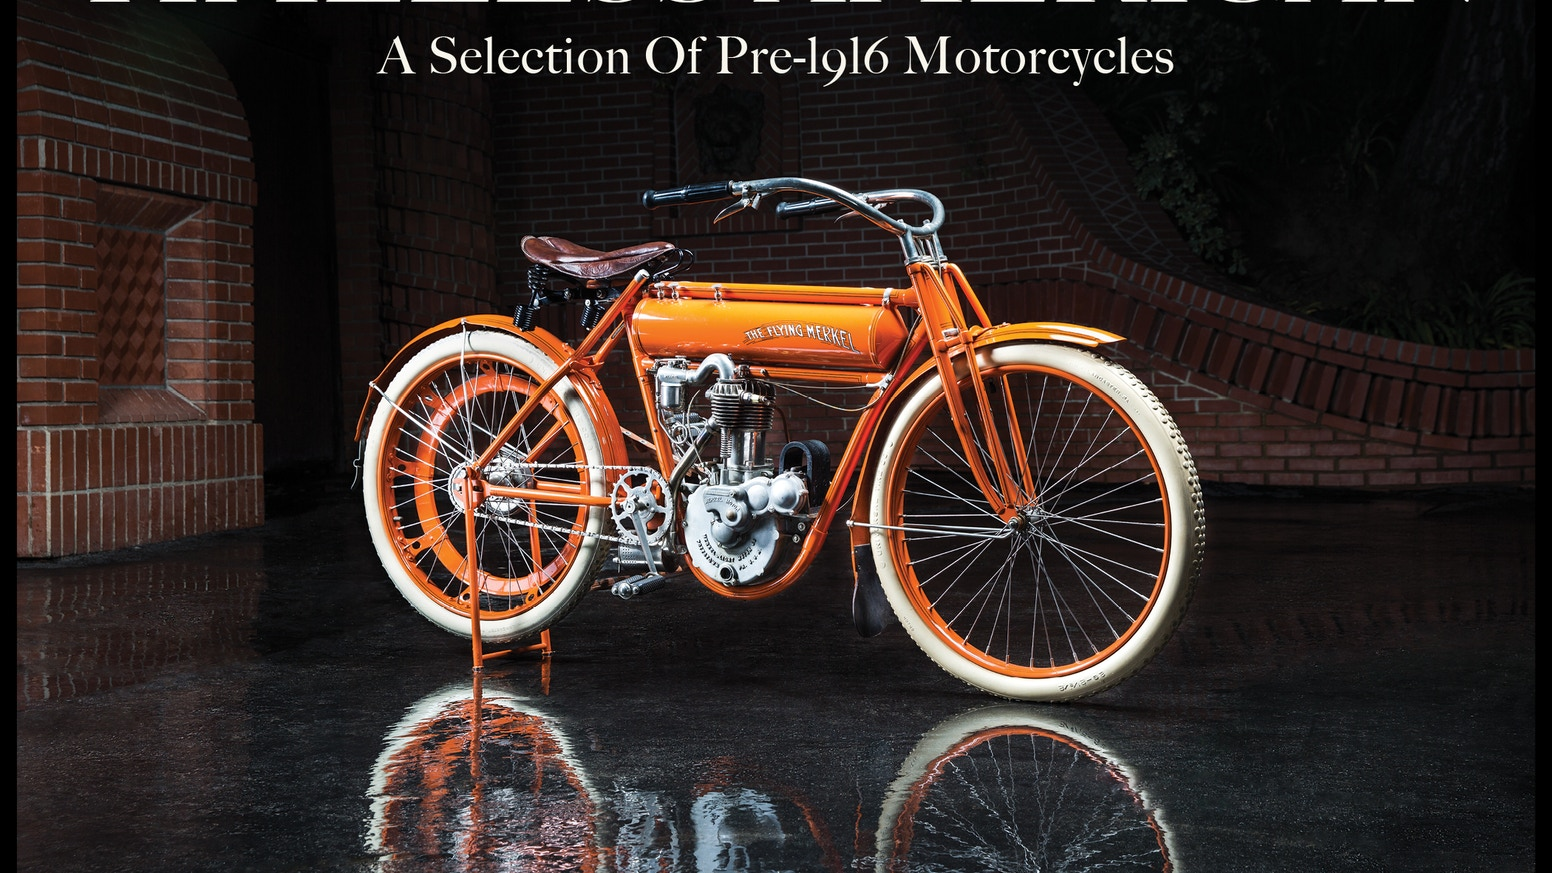 Timeless American is a beautiful book showcasing 46 original American made motorcycles from 1900-1915